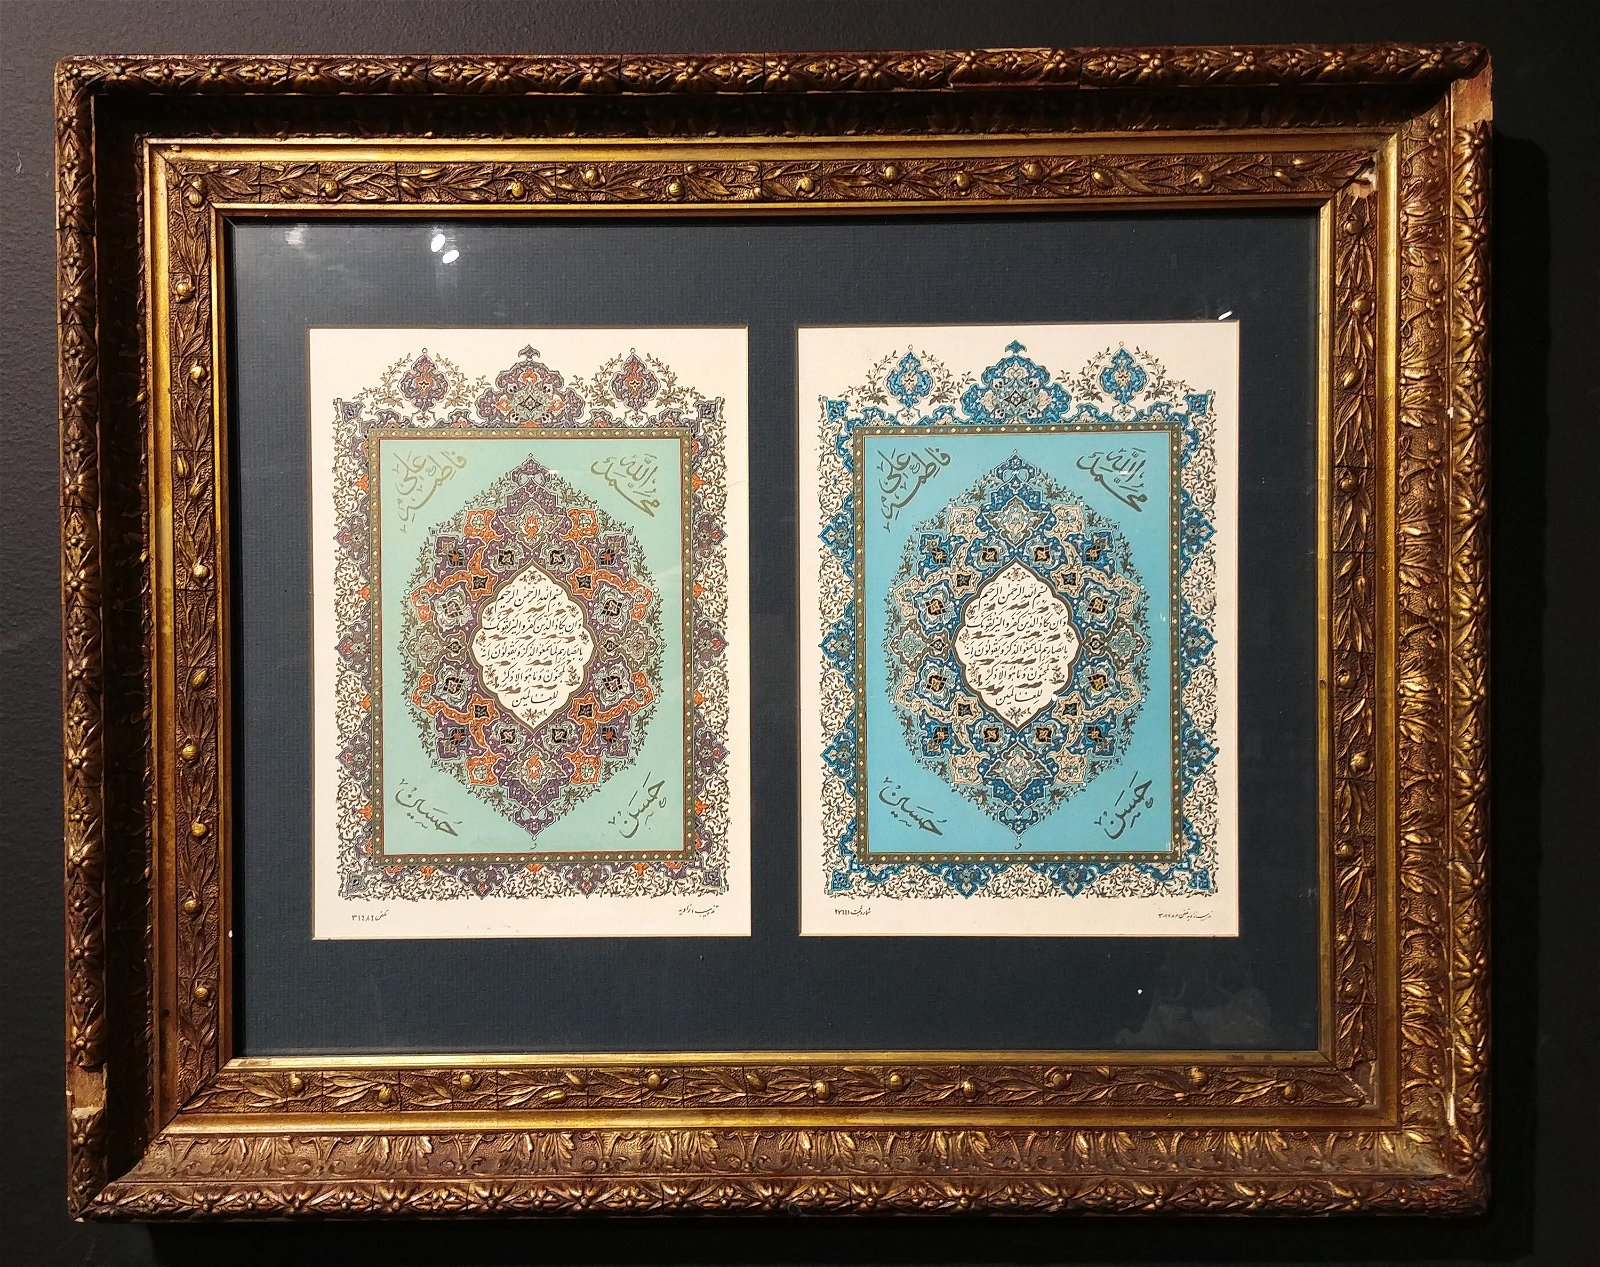 Framed Persian Islamic Calligraphy, signed and dated